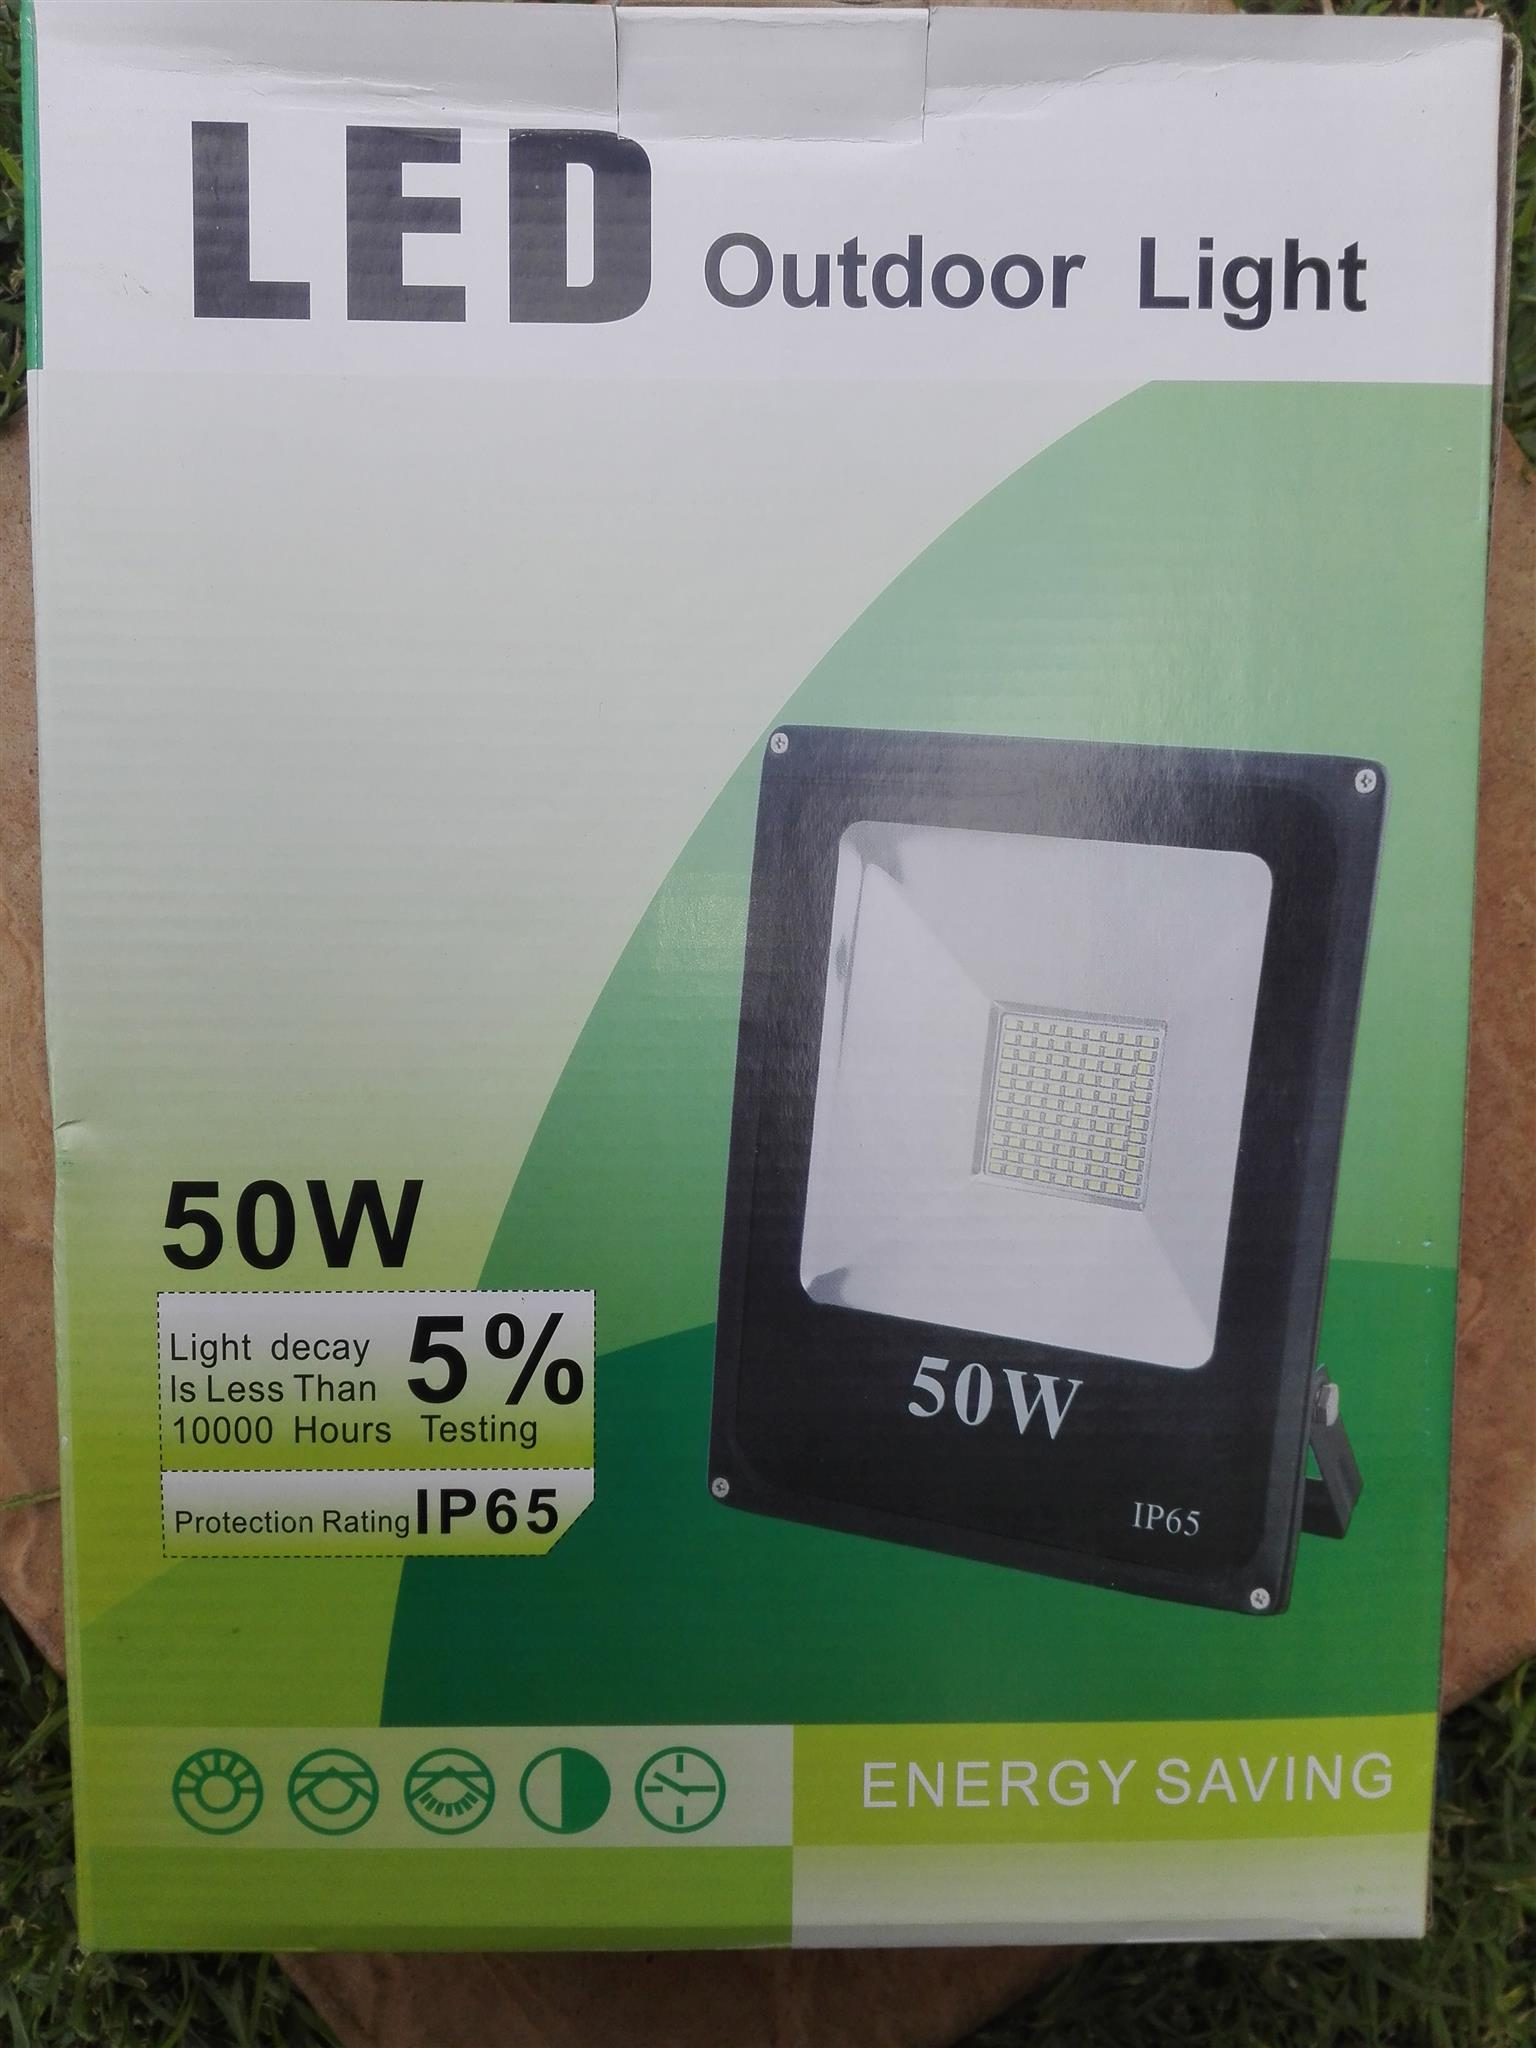 50 W LED OUTDOOR LIGHTS